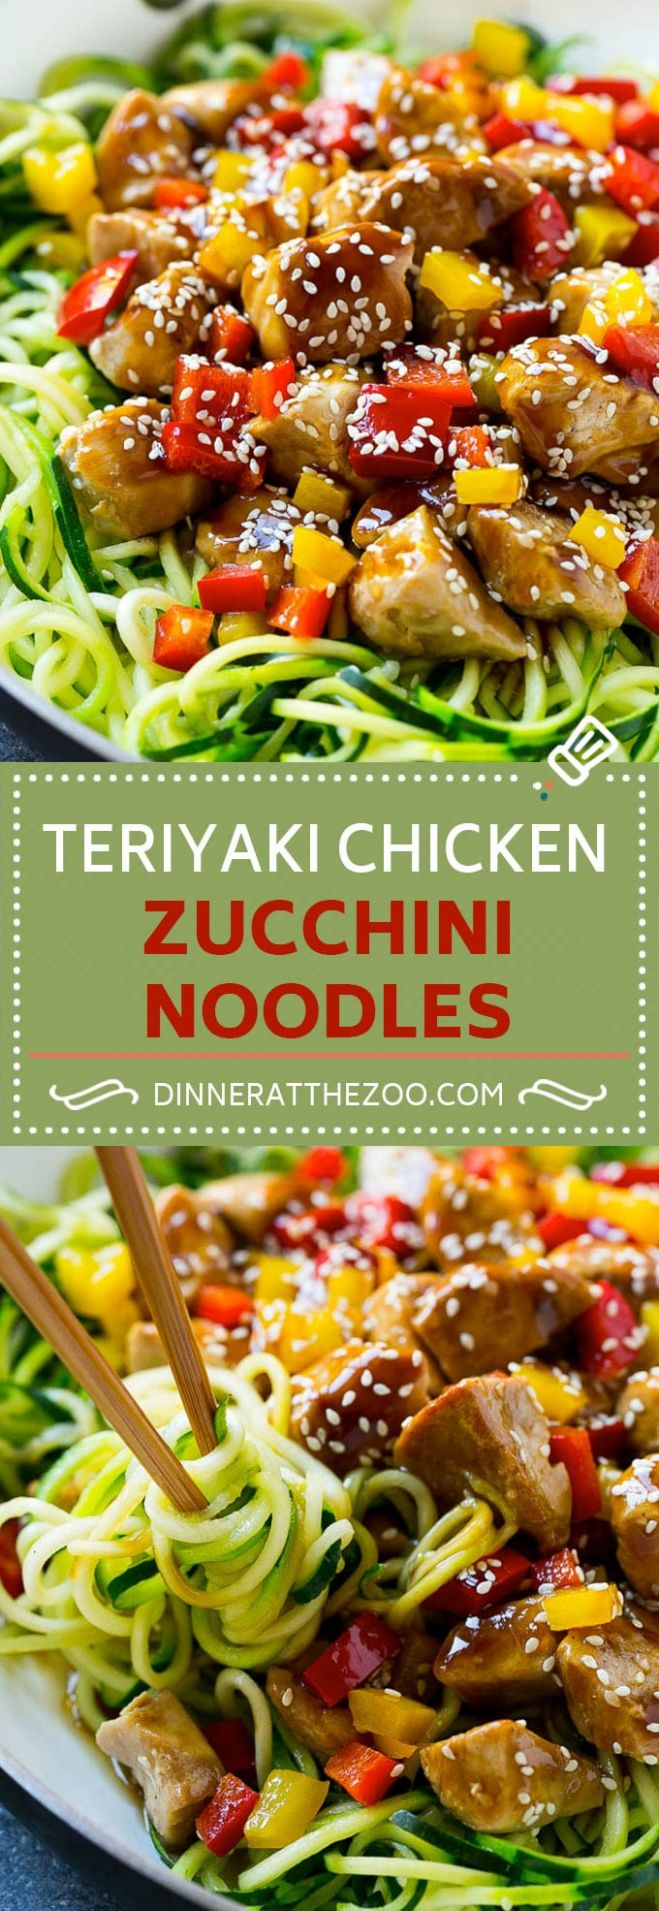 10 Healthy Zoodle (Zucchini Noodle) Recipes - Dinner at the Zoo - Dinner Recipes With Zoodles